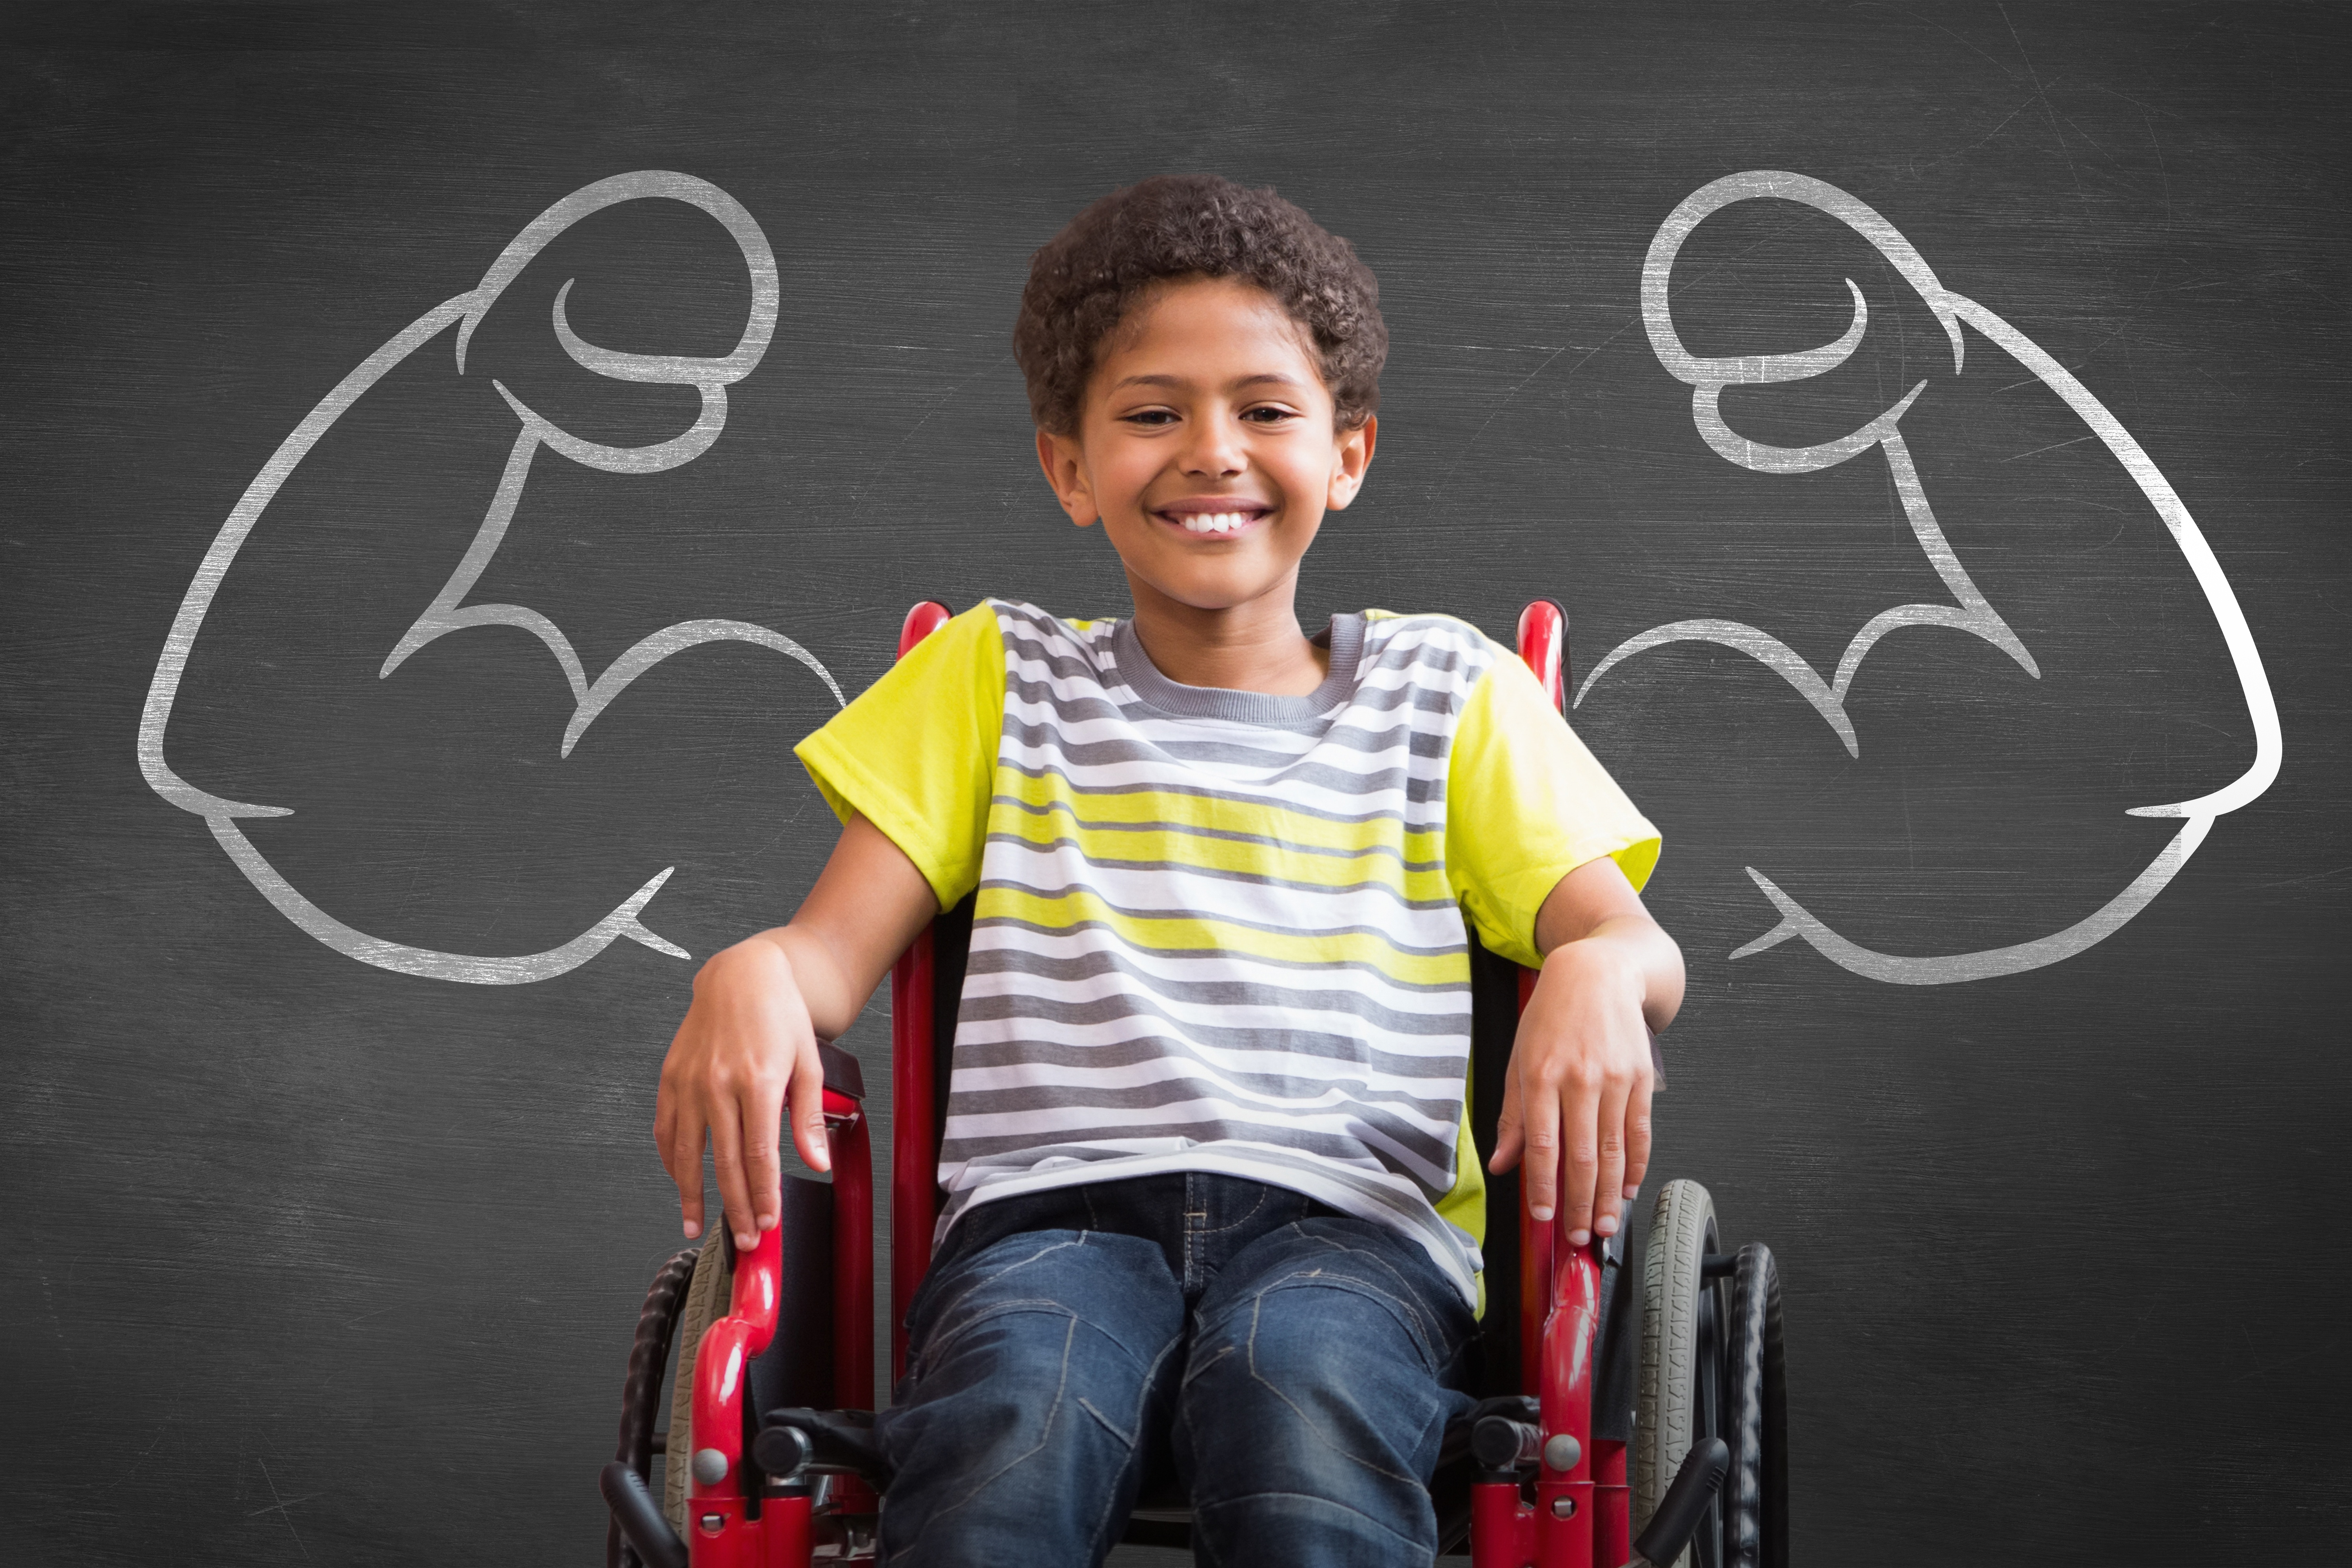 Boy in front of blackboard drawing of muscular arms. Boy is in a red wheelchair.